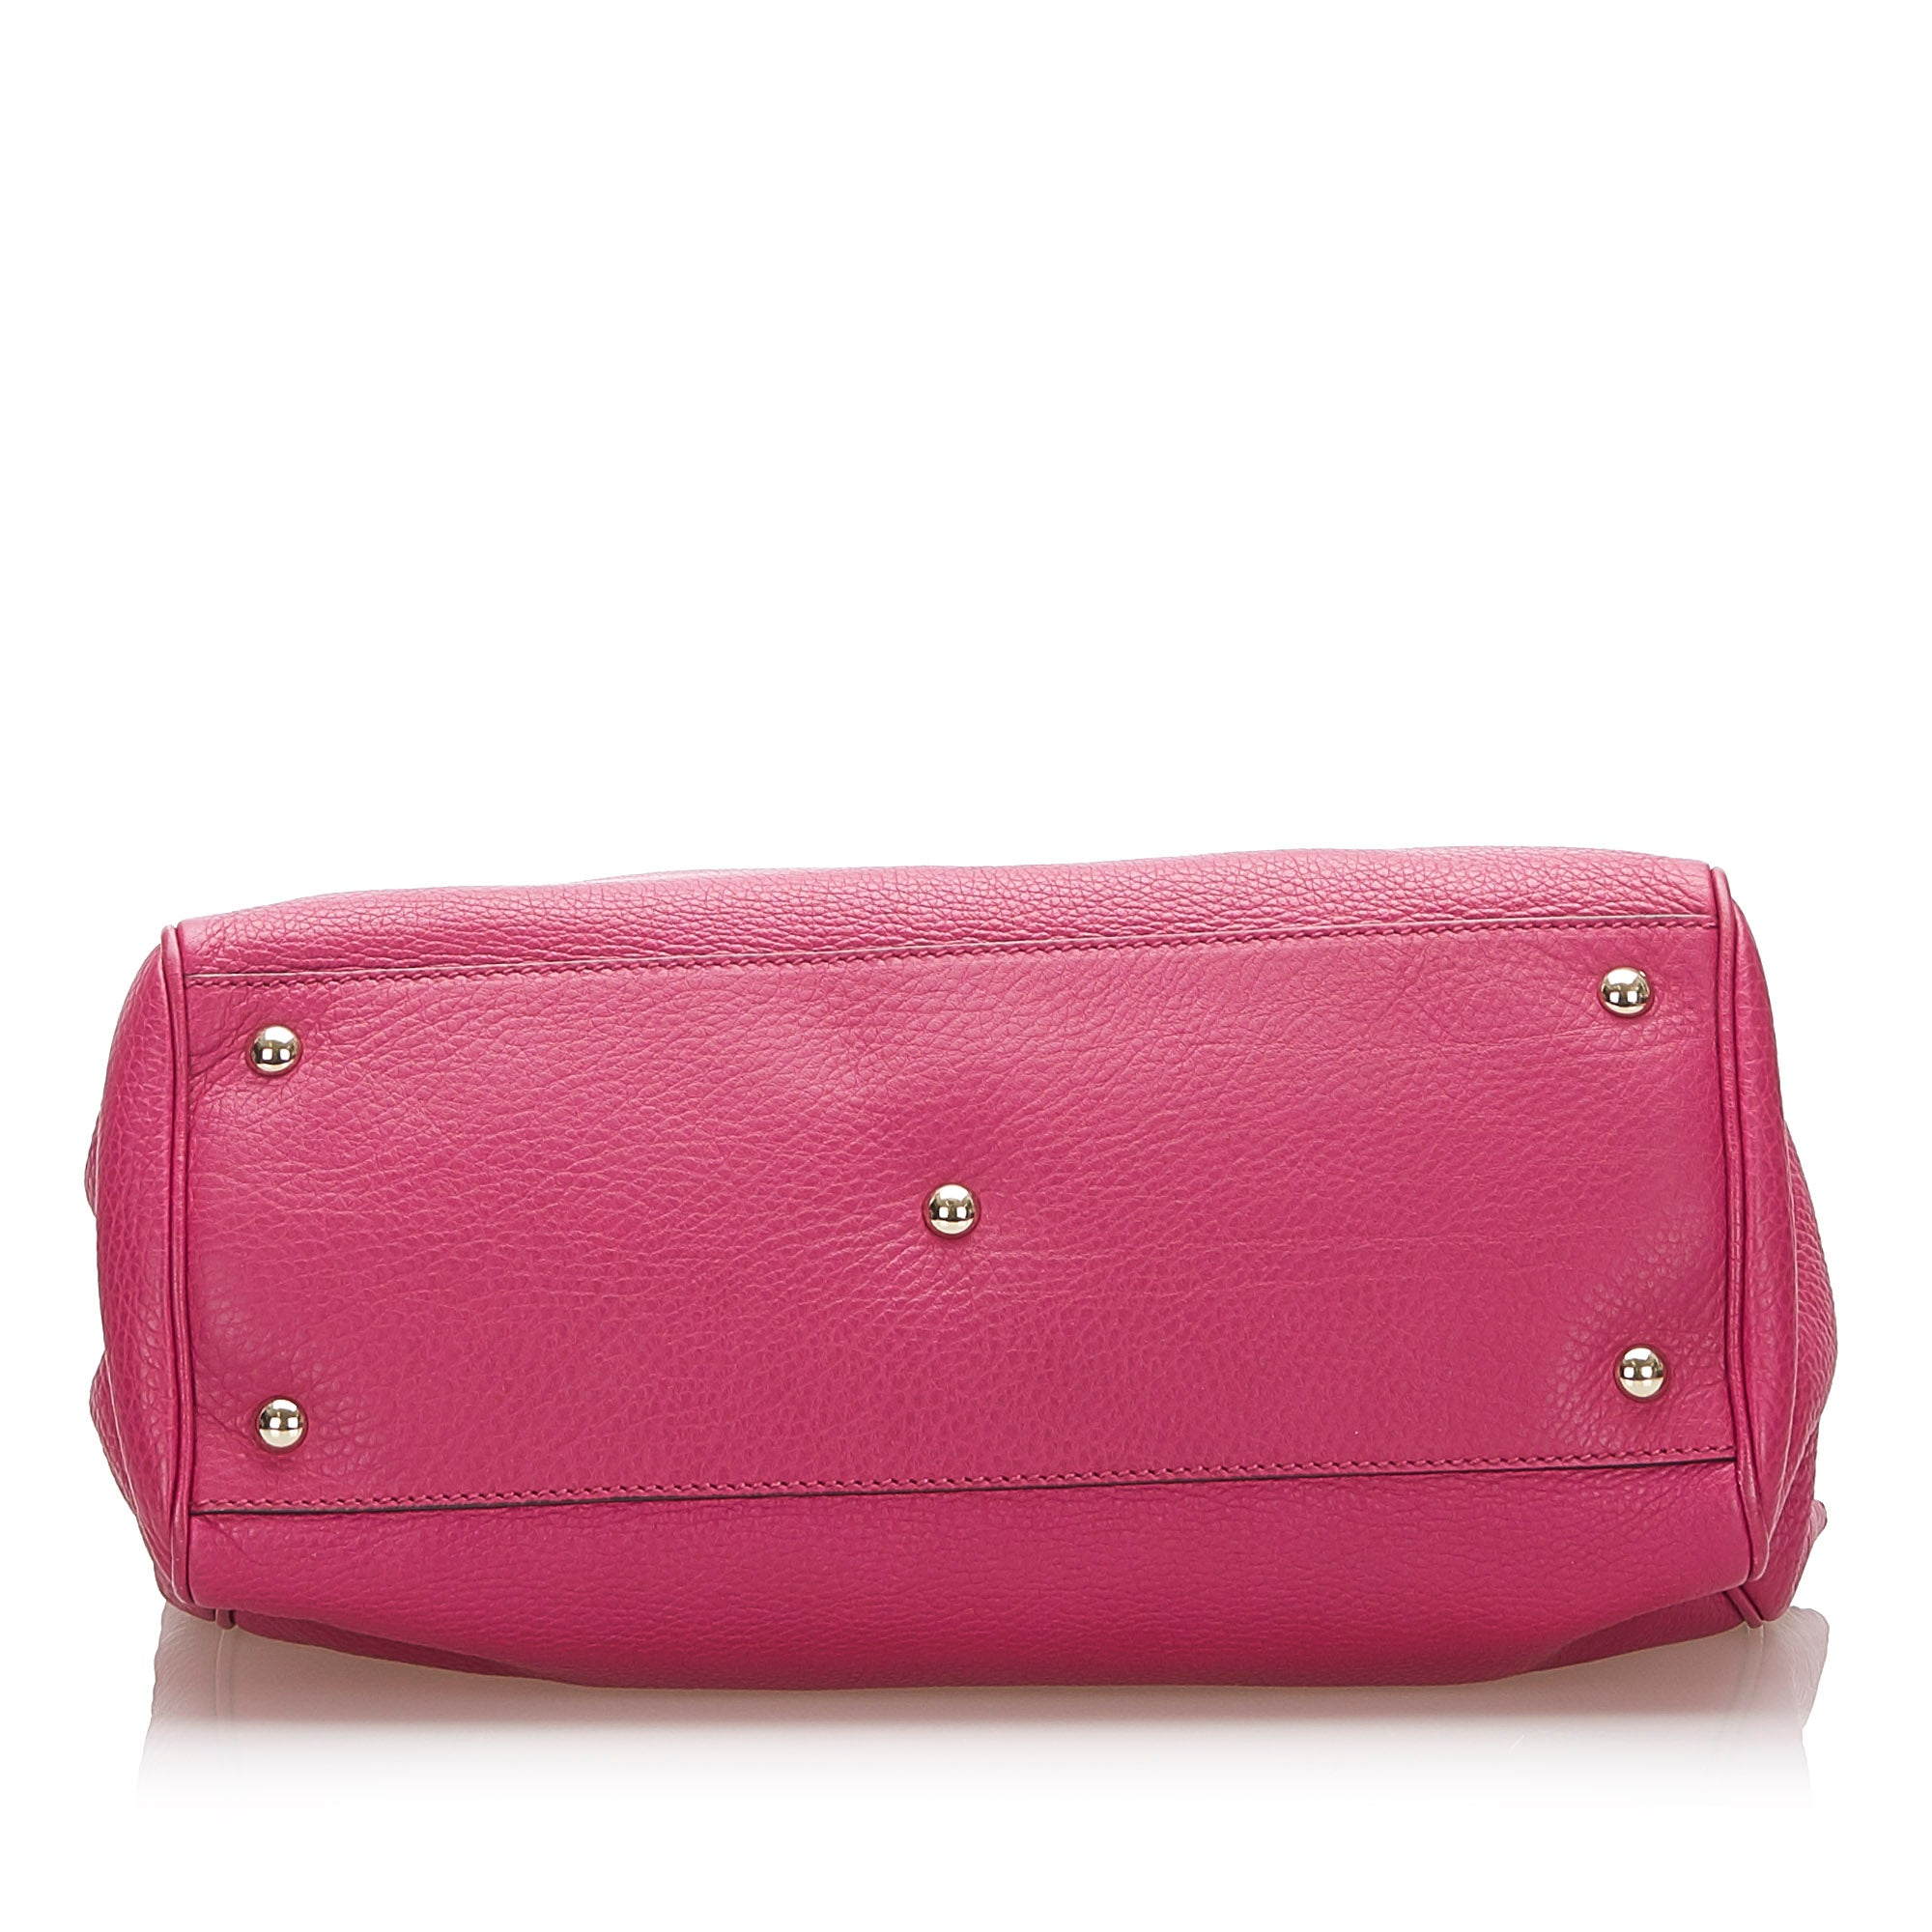 Gucci Pink Bamboo Shopper Leather Satchel